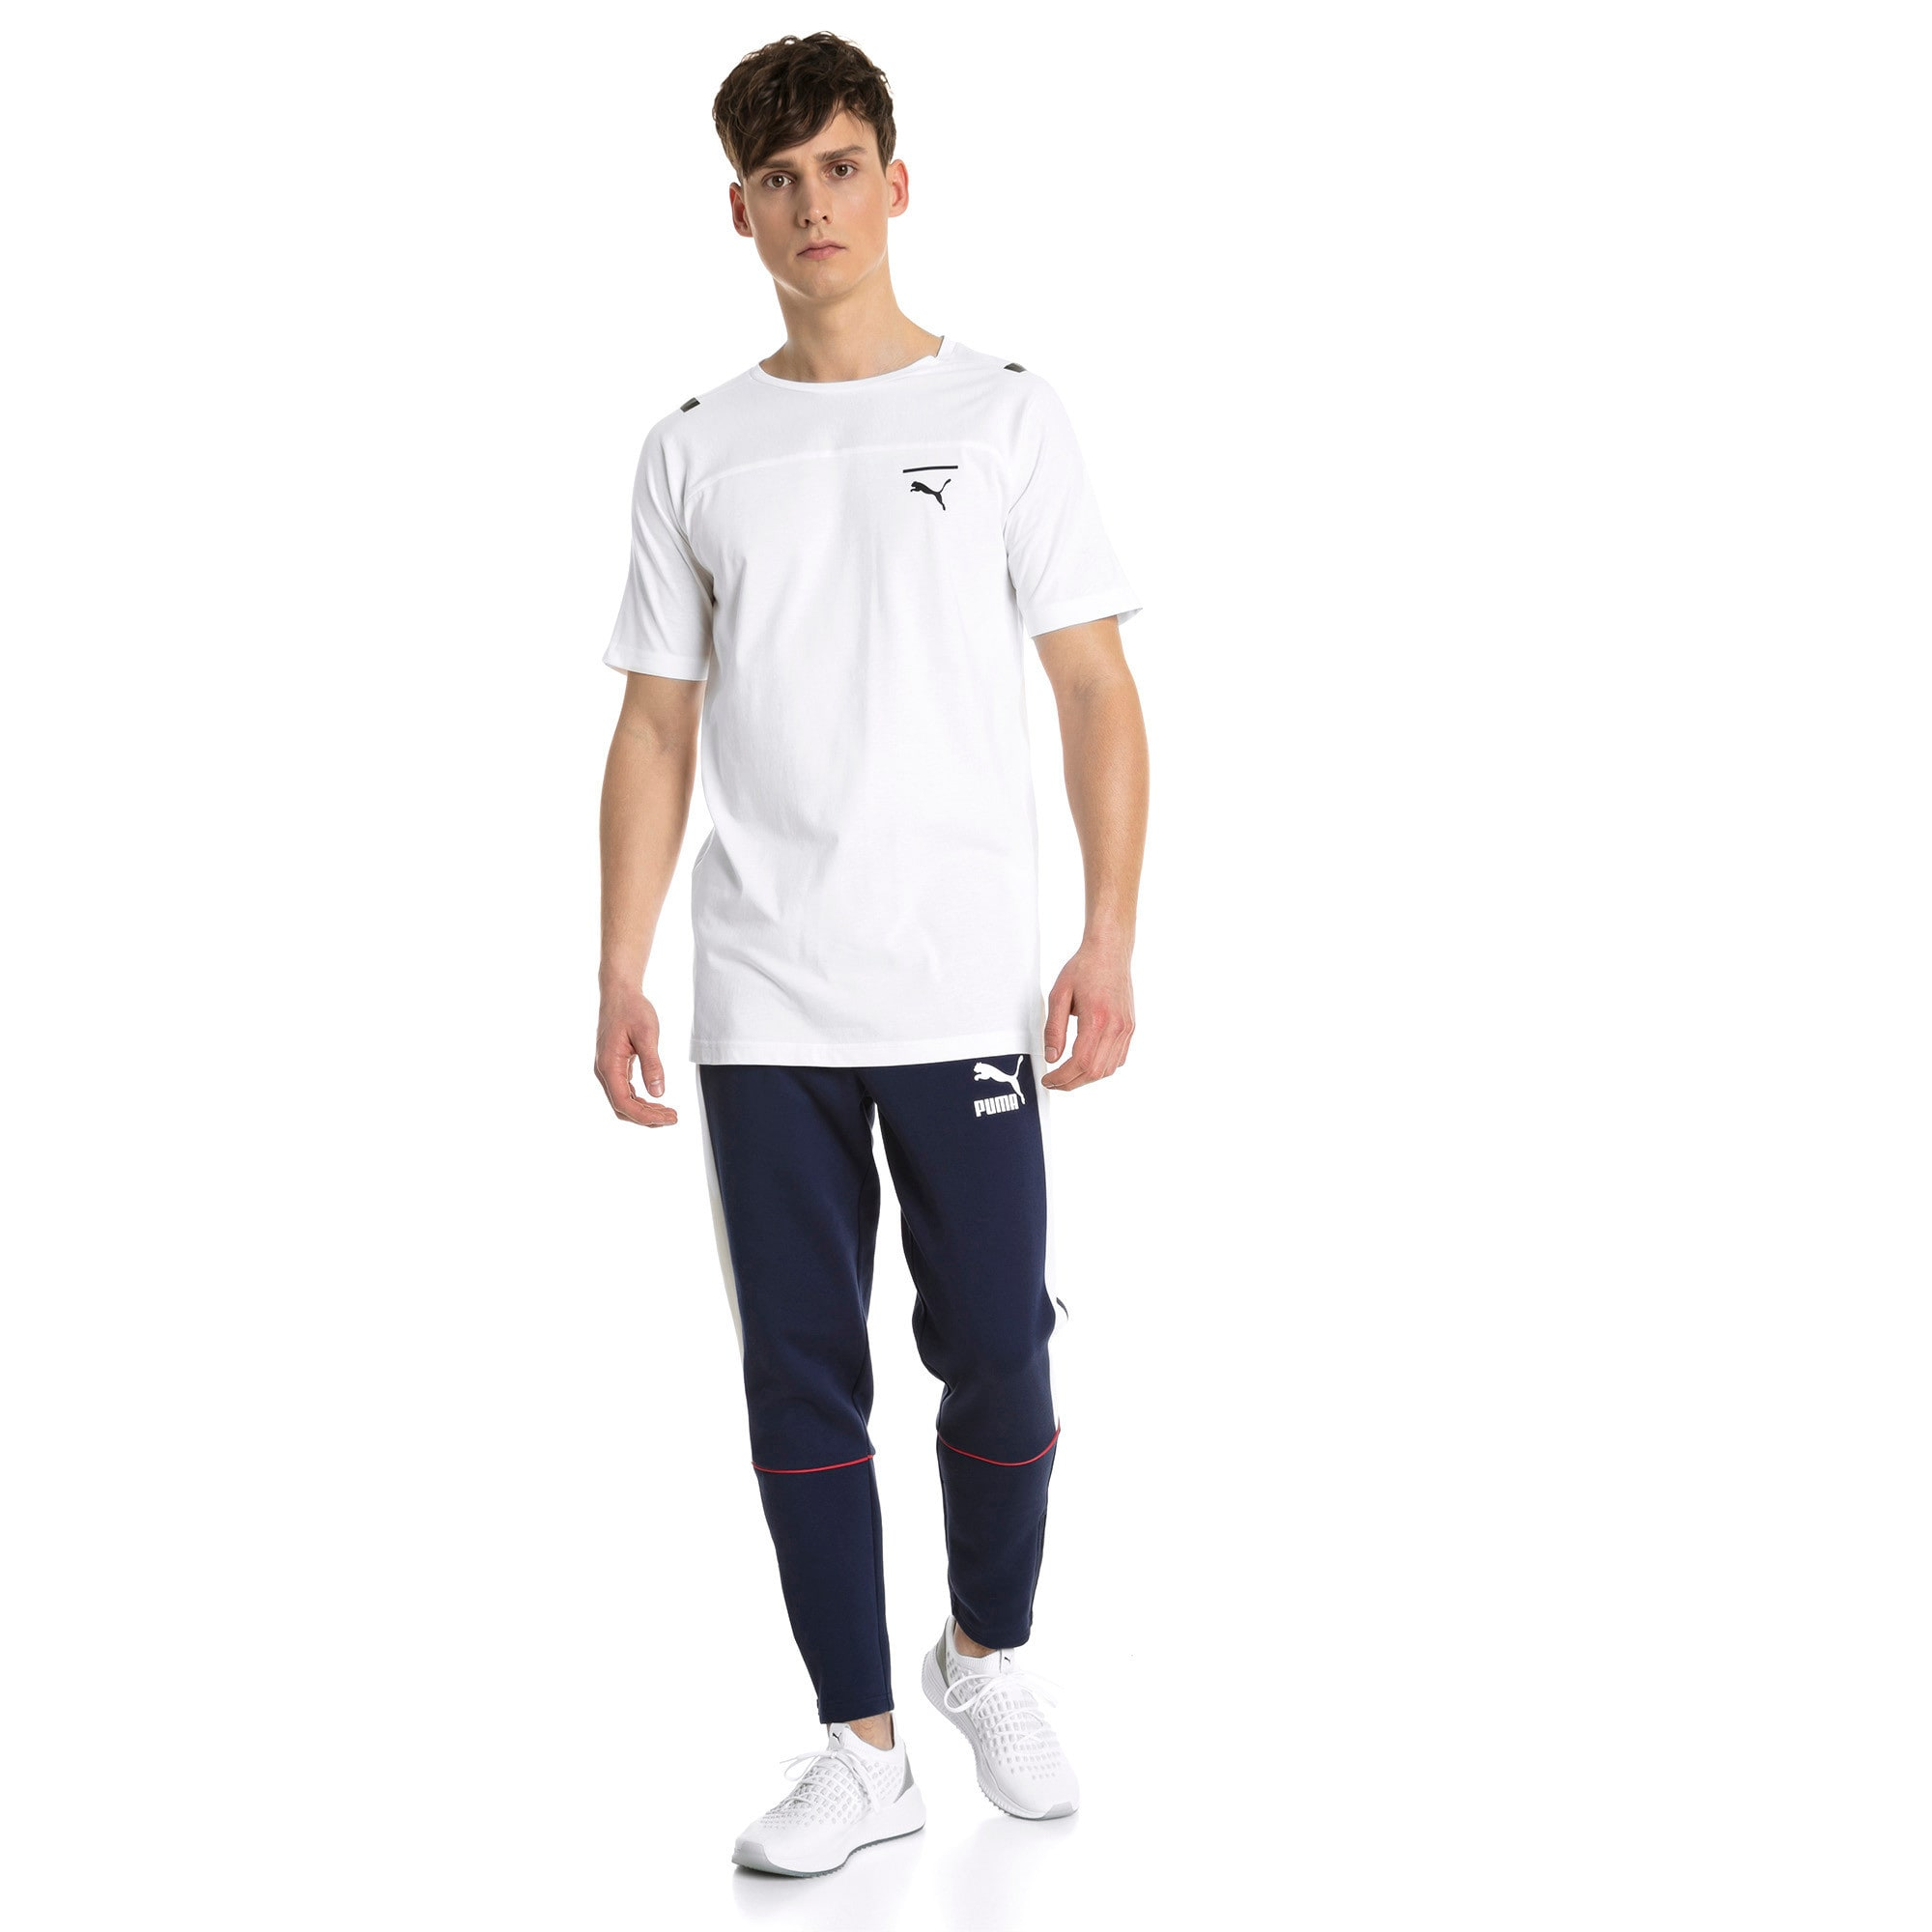 Thumbnail 4 of Pace Men's Tee, Puma White, medium-IND